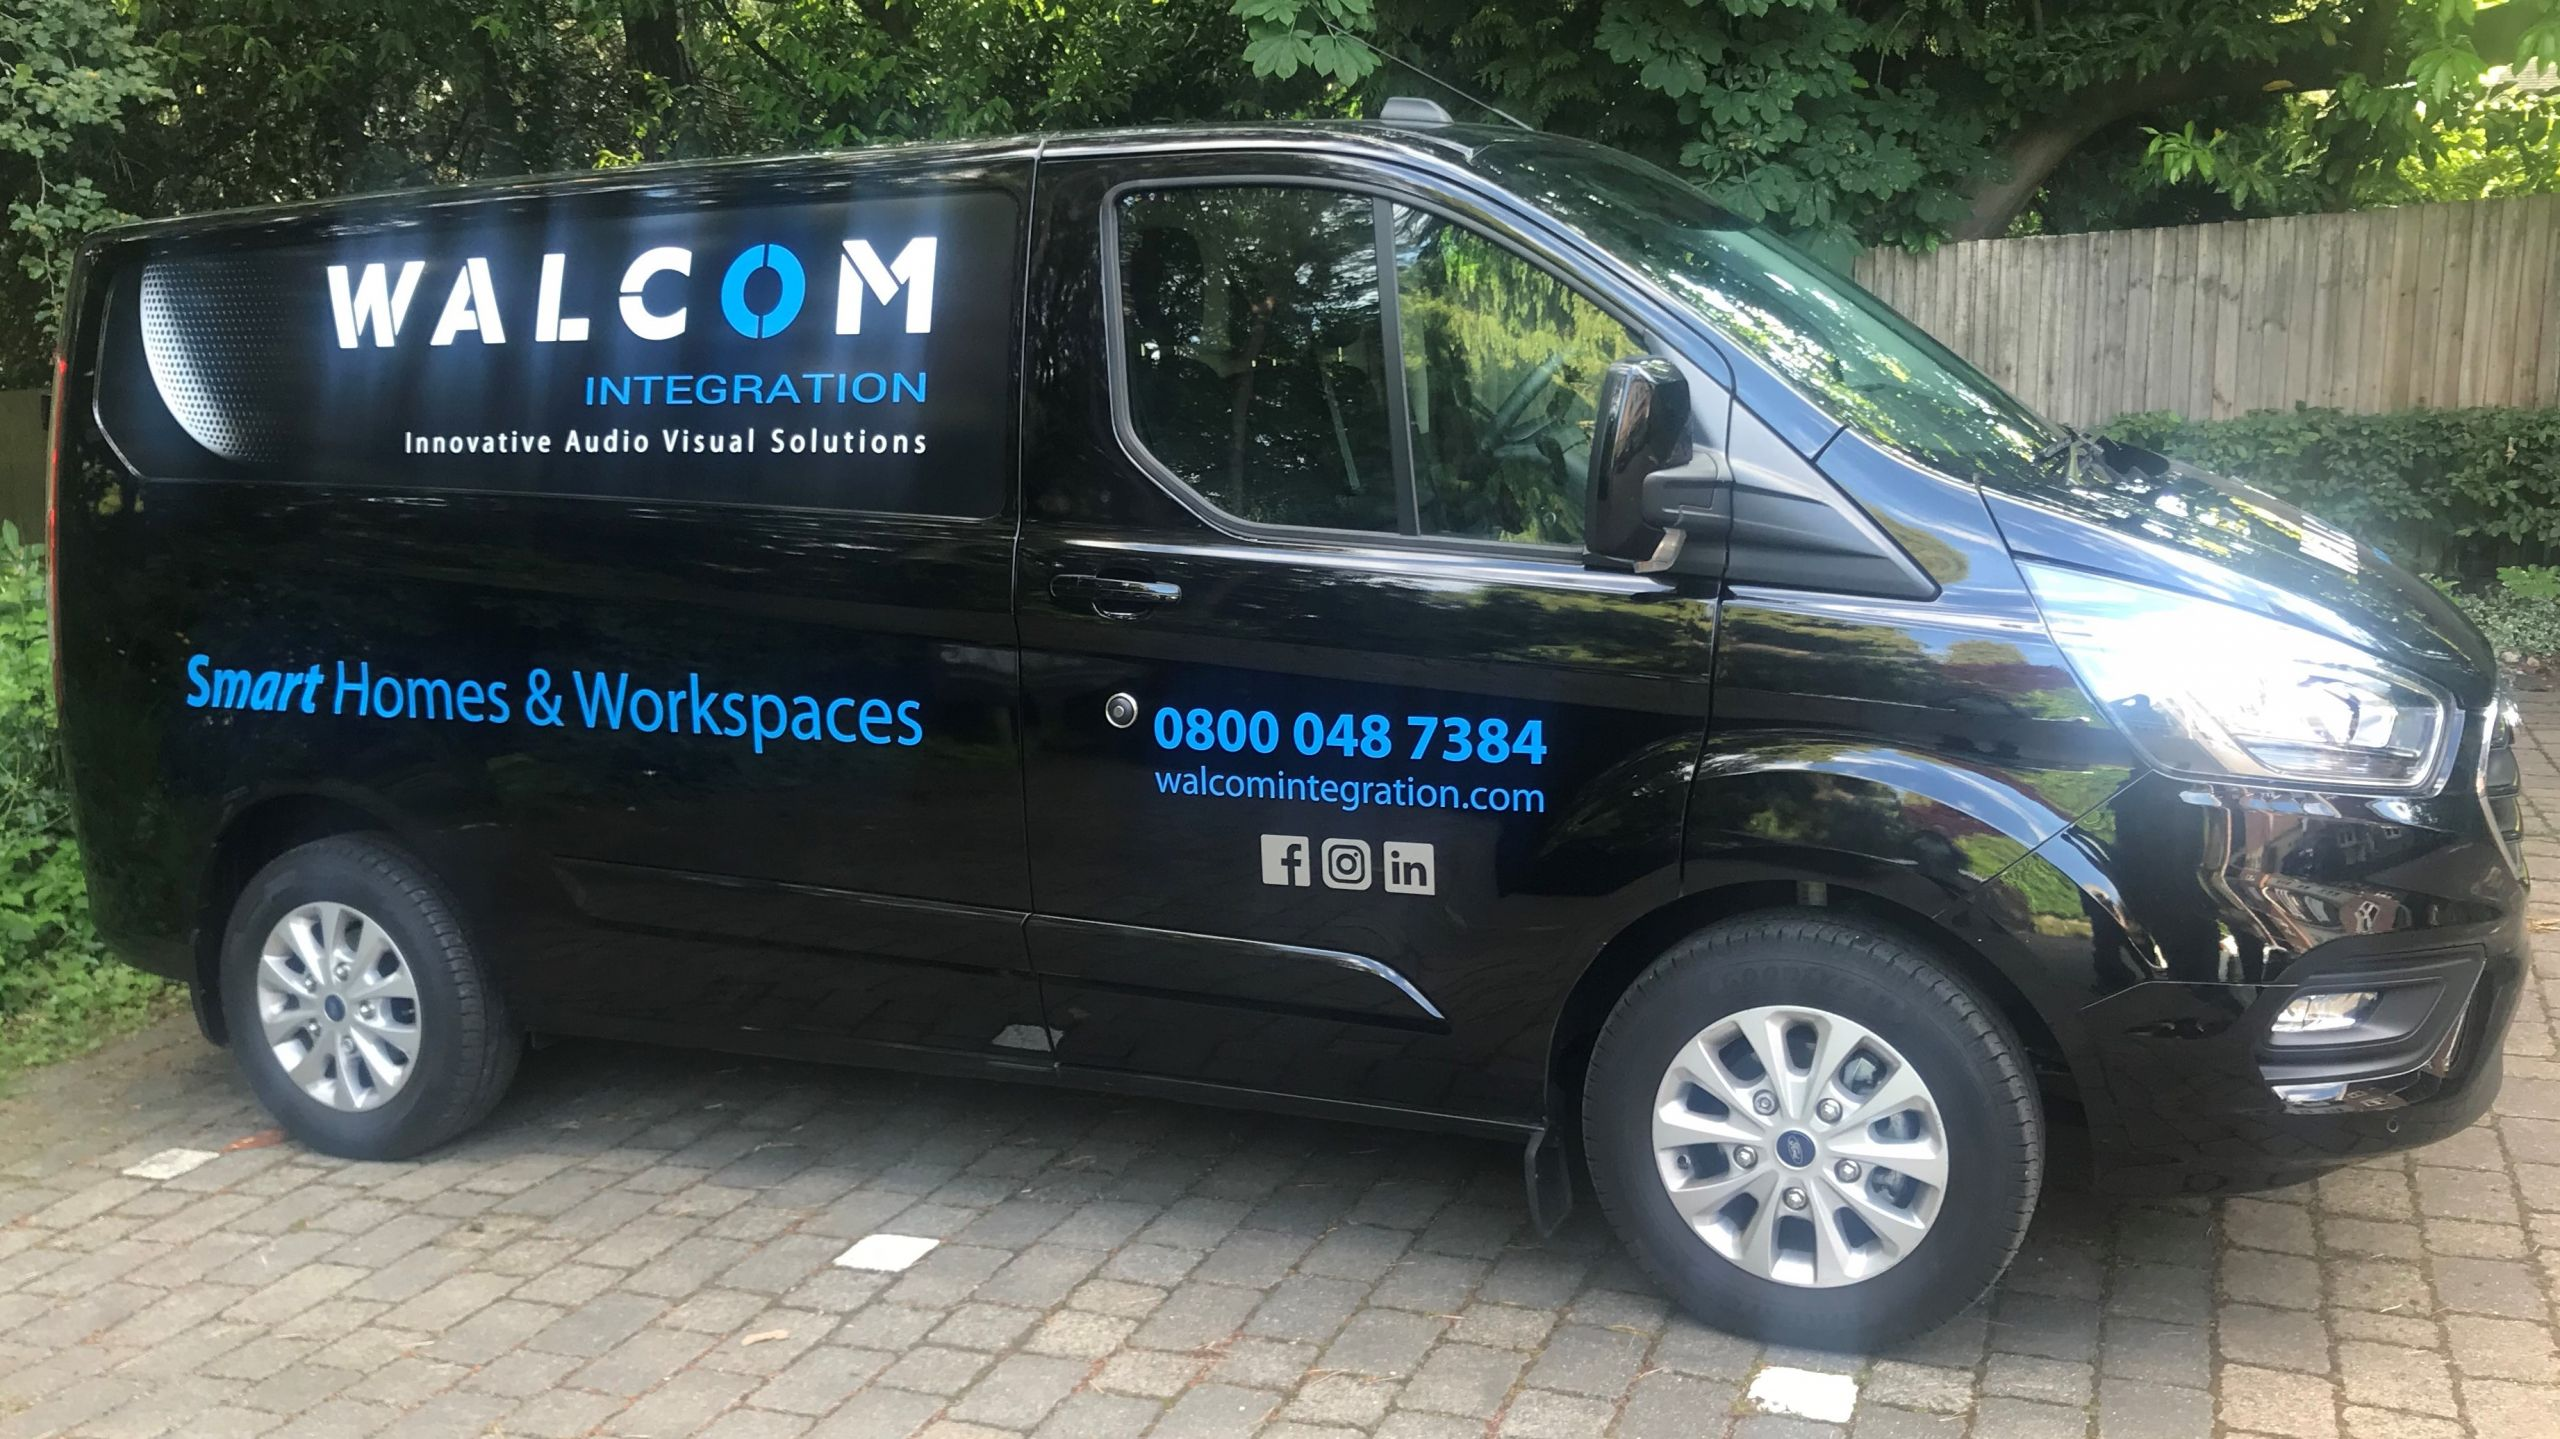 Side on view of van with Walcom Logo and details